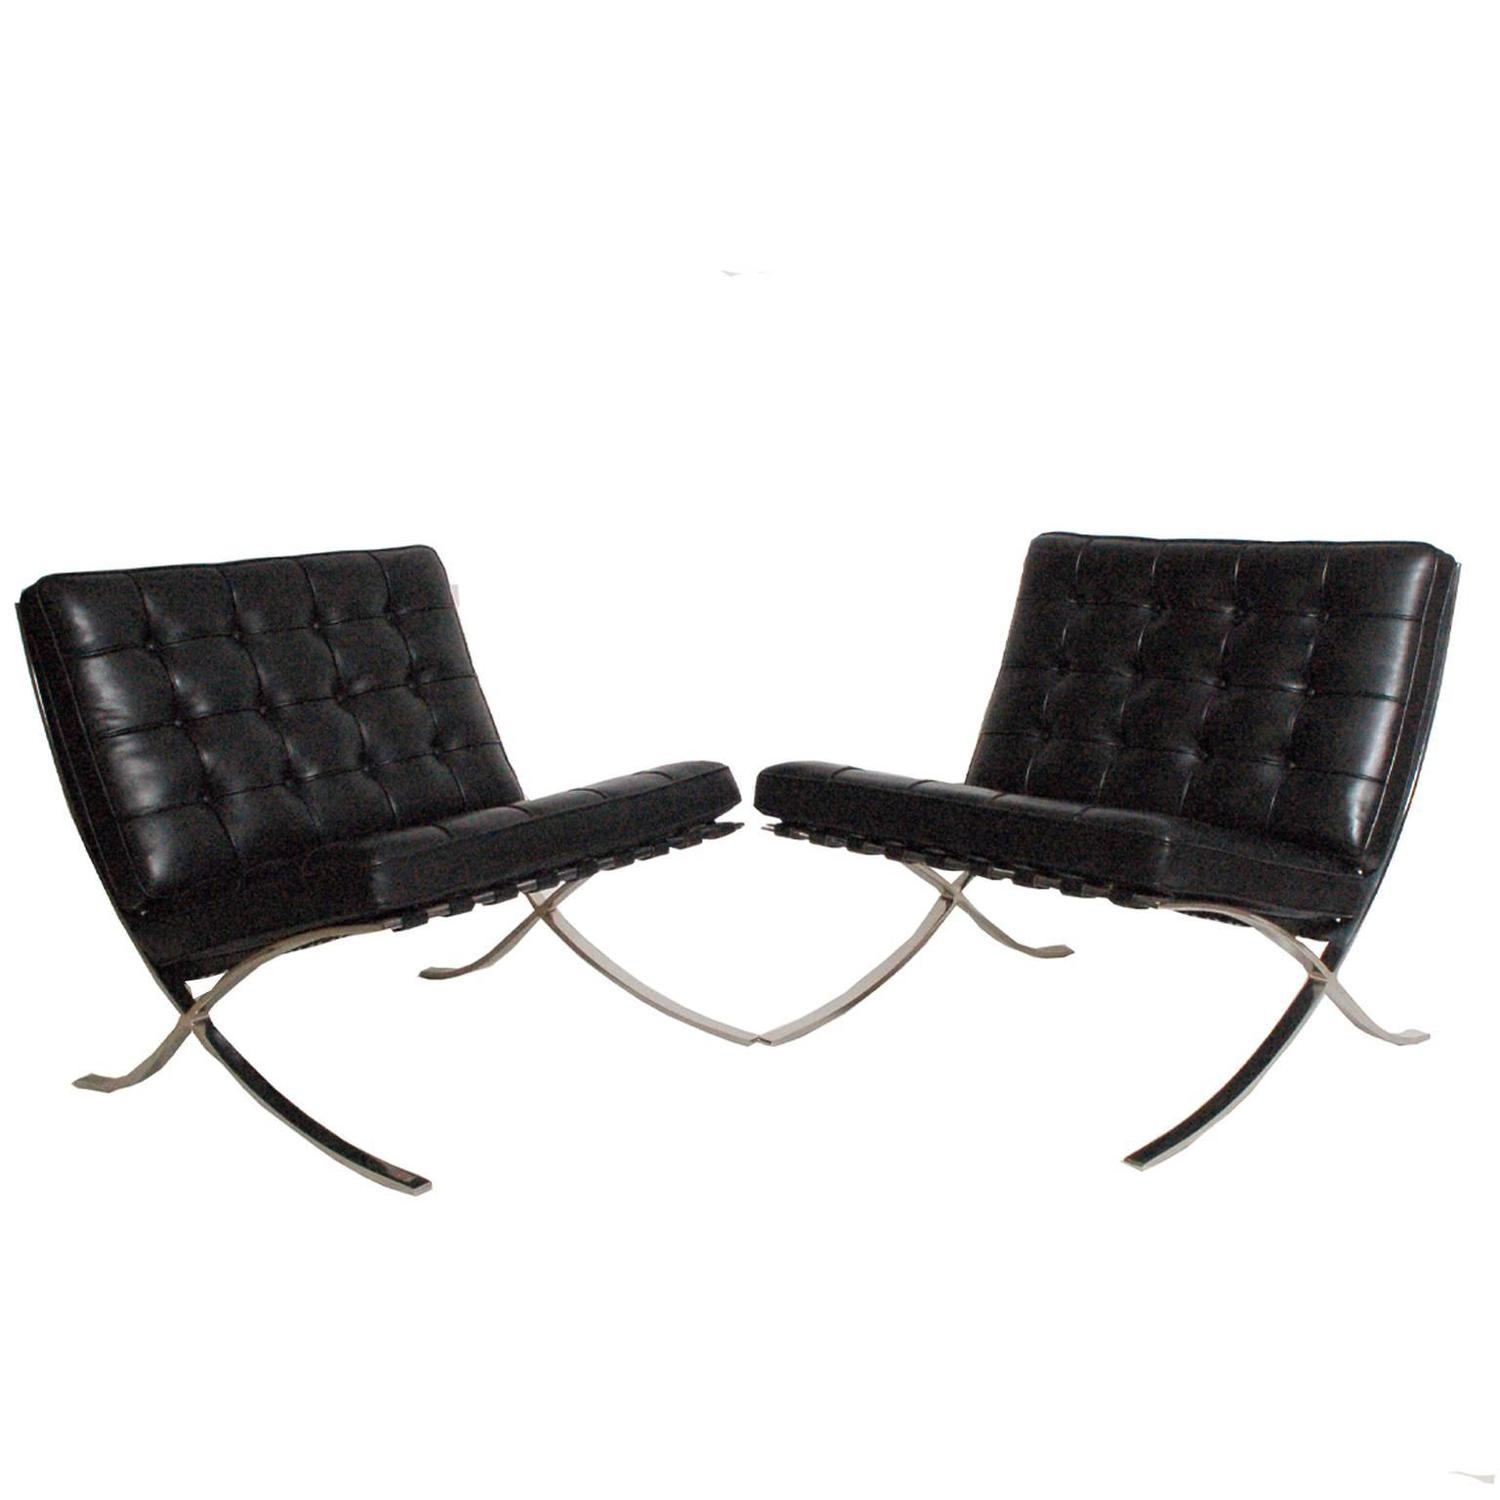 Pair Of Barcelona Chairs And Coffee Table By Mies Van Der Rohe For Knoll For Sale At 1stdibs